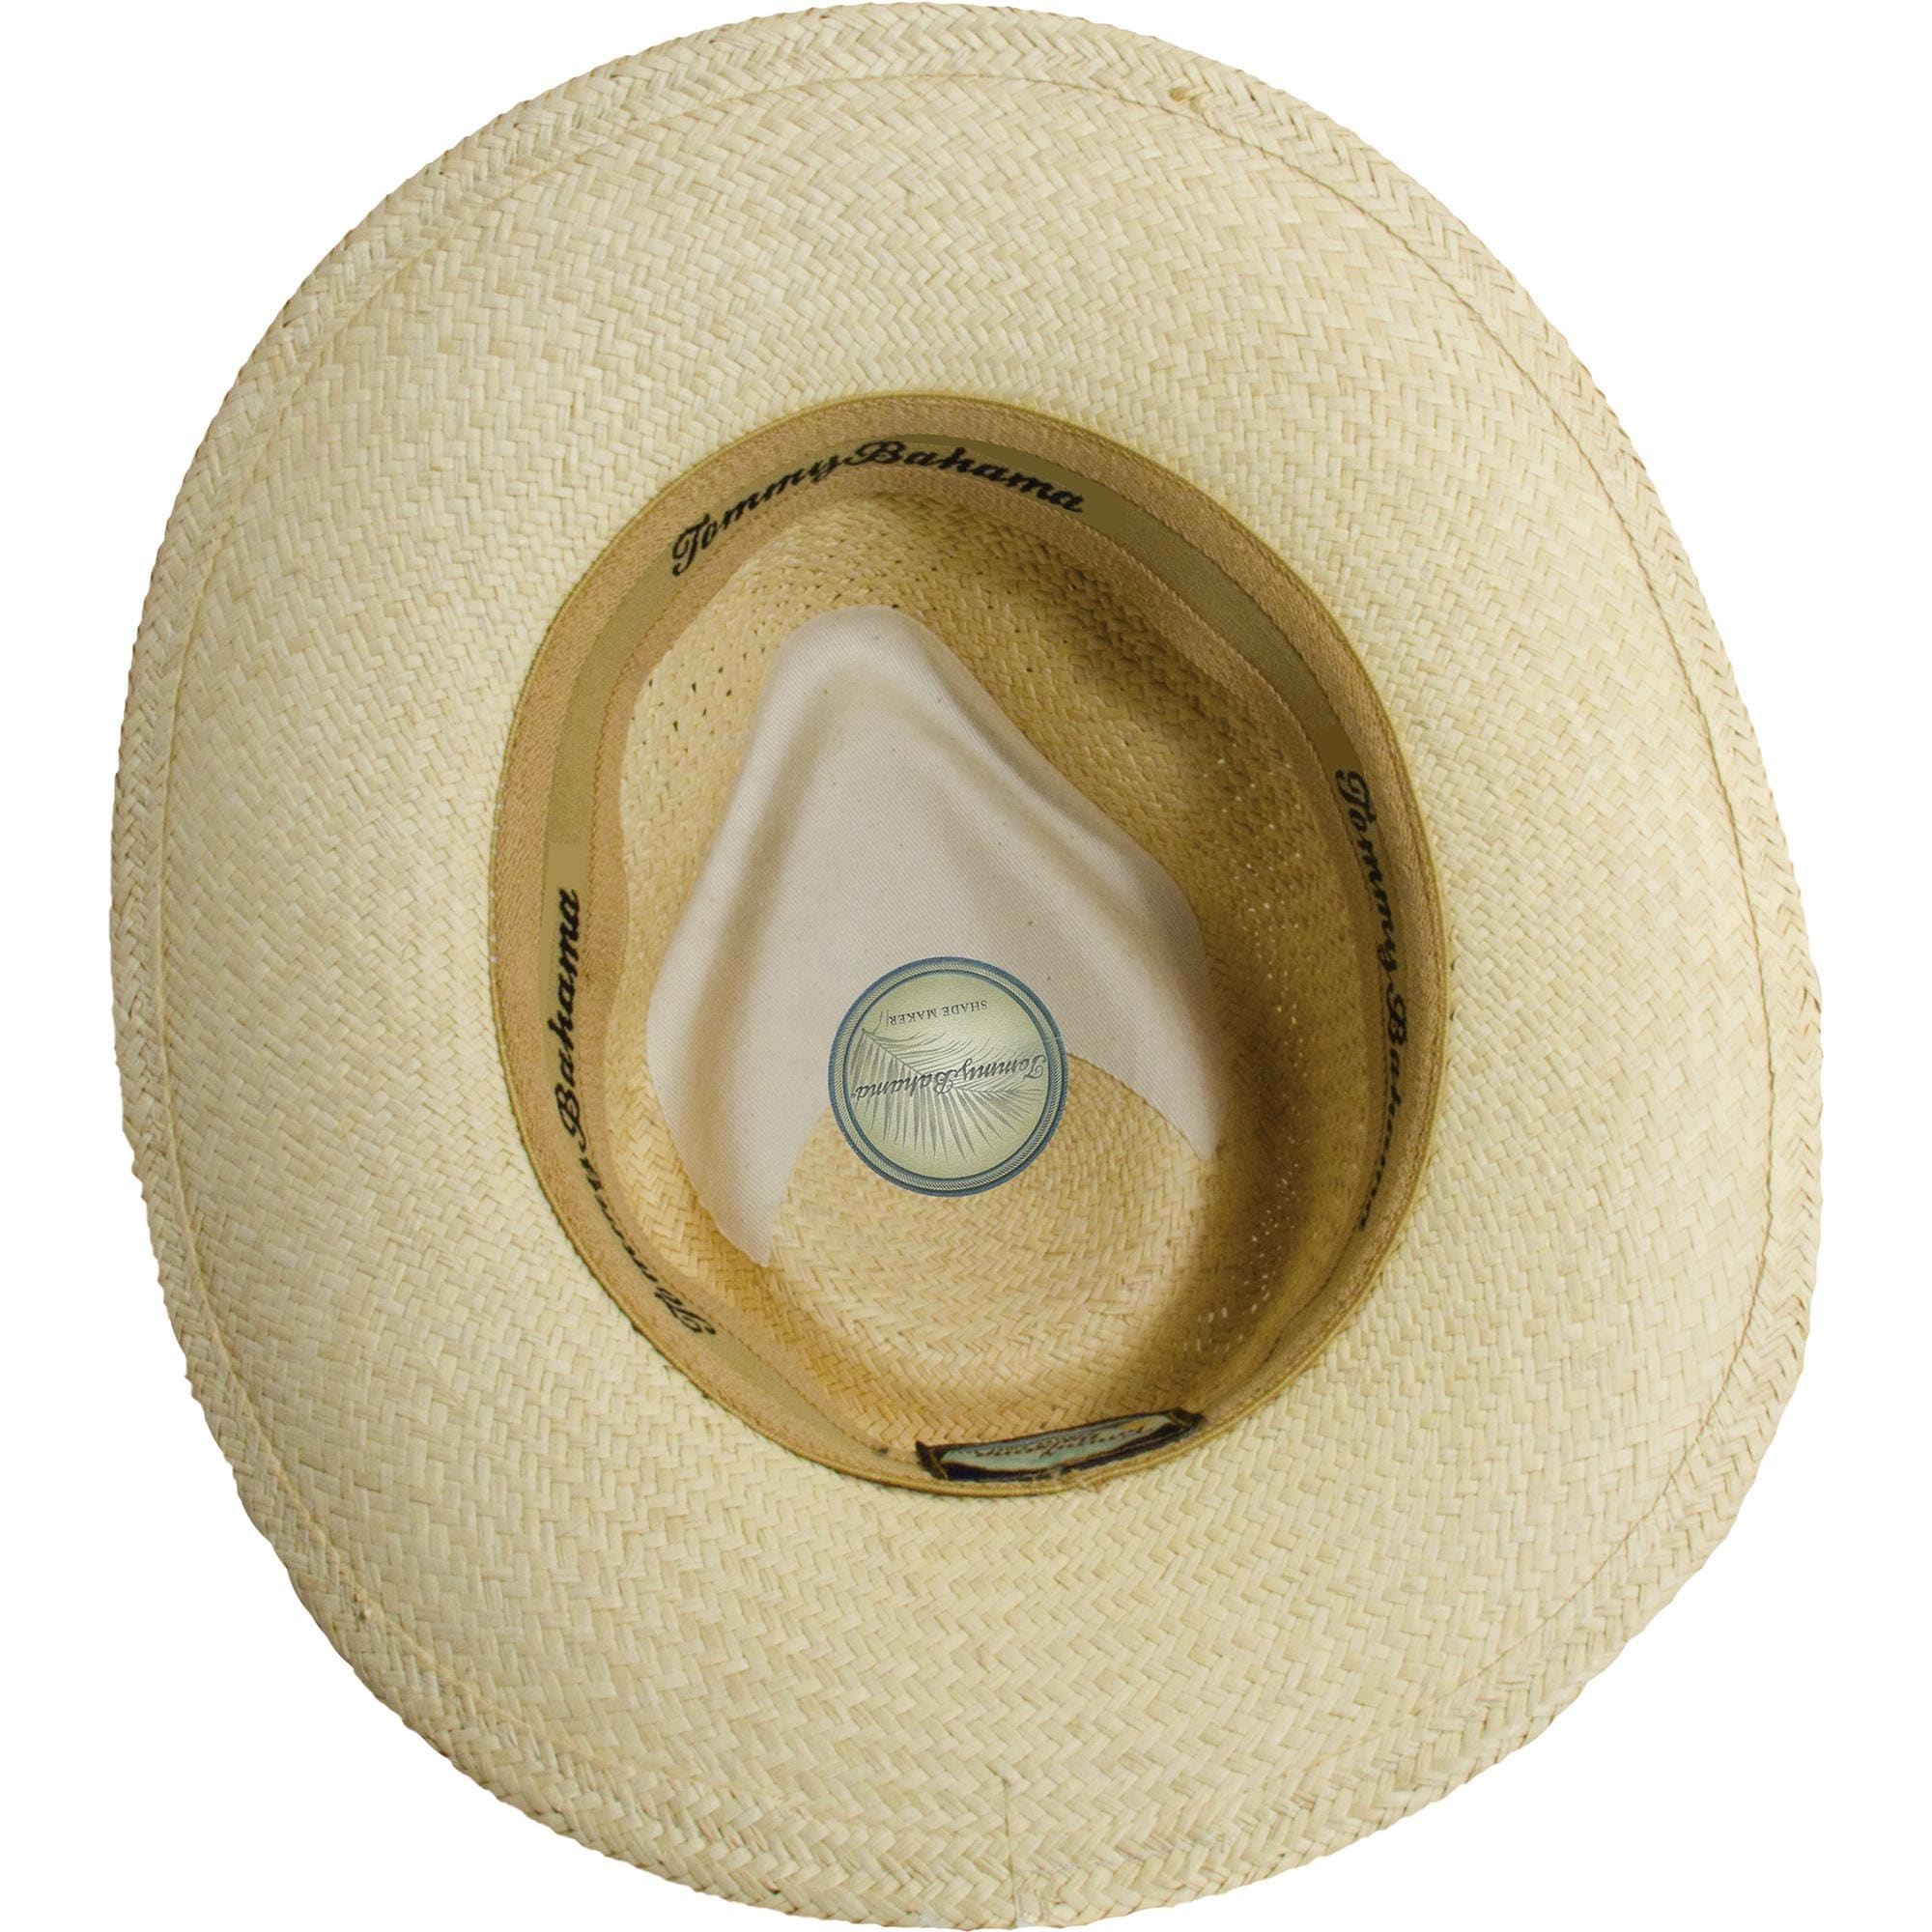 c5ca68da42a Shop Tommy Bahama Handwoven Panama Safari Hat - Free Shipping Today -  Overstock.com - 14310640